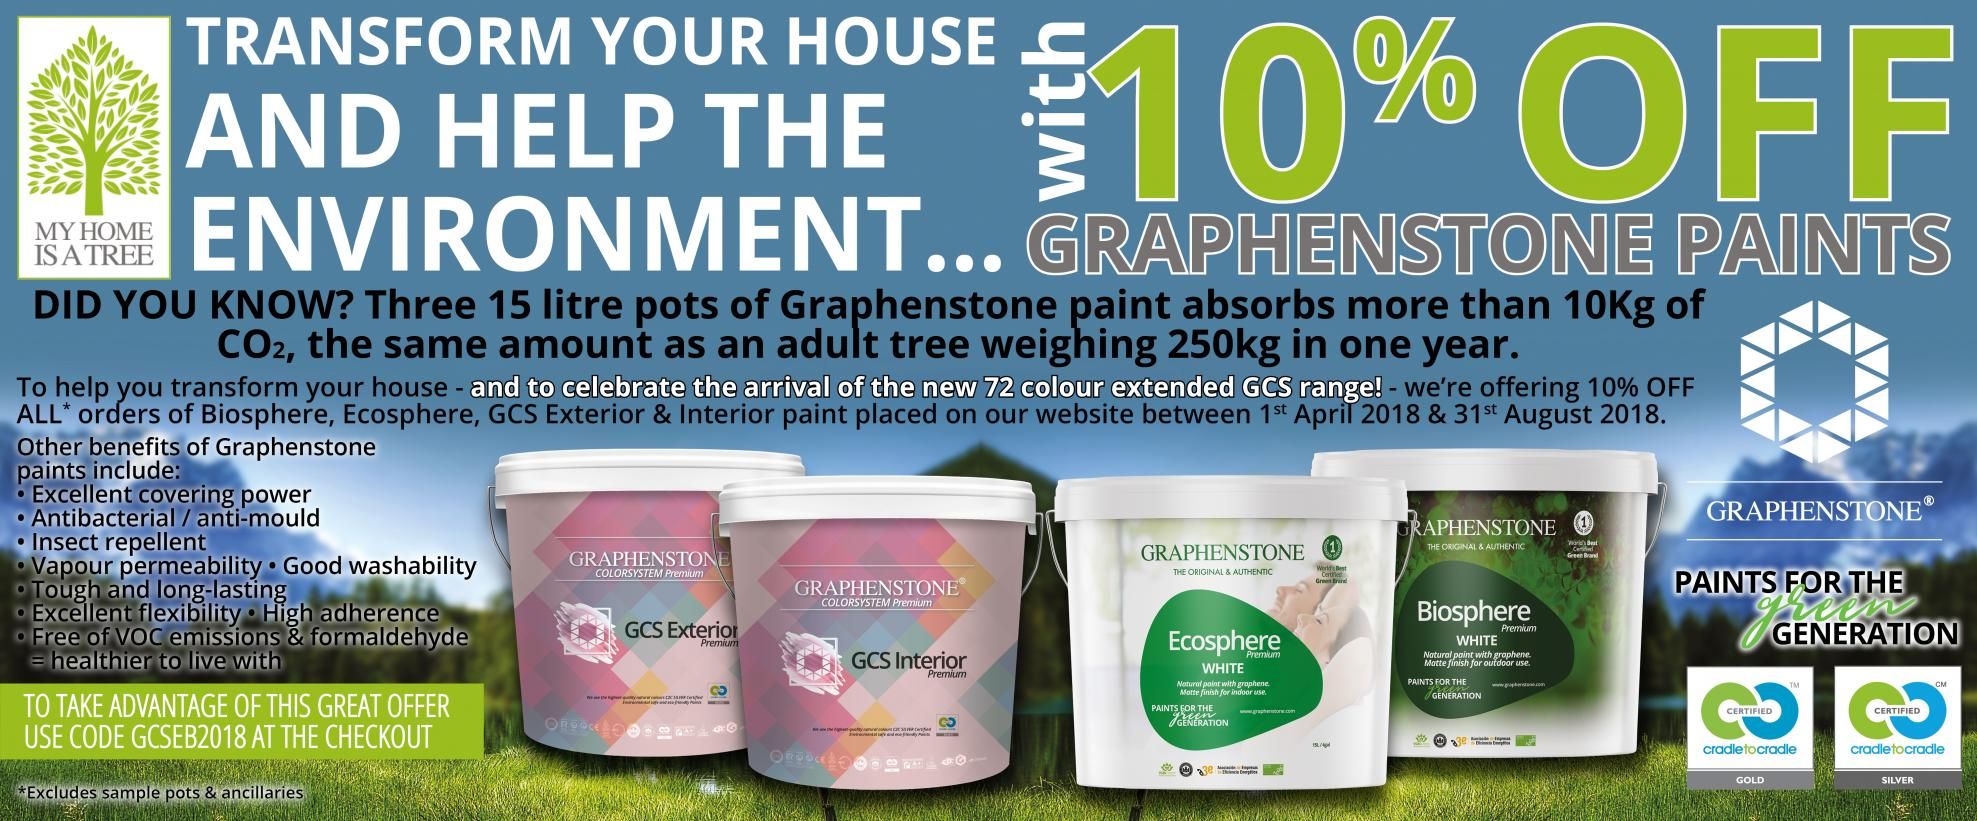 Graphenstone Paint Promotion